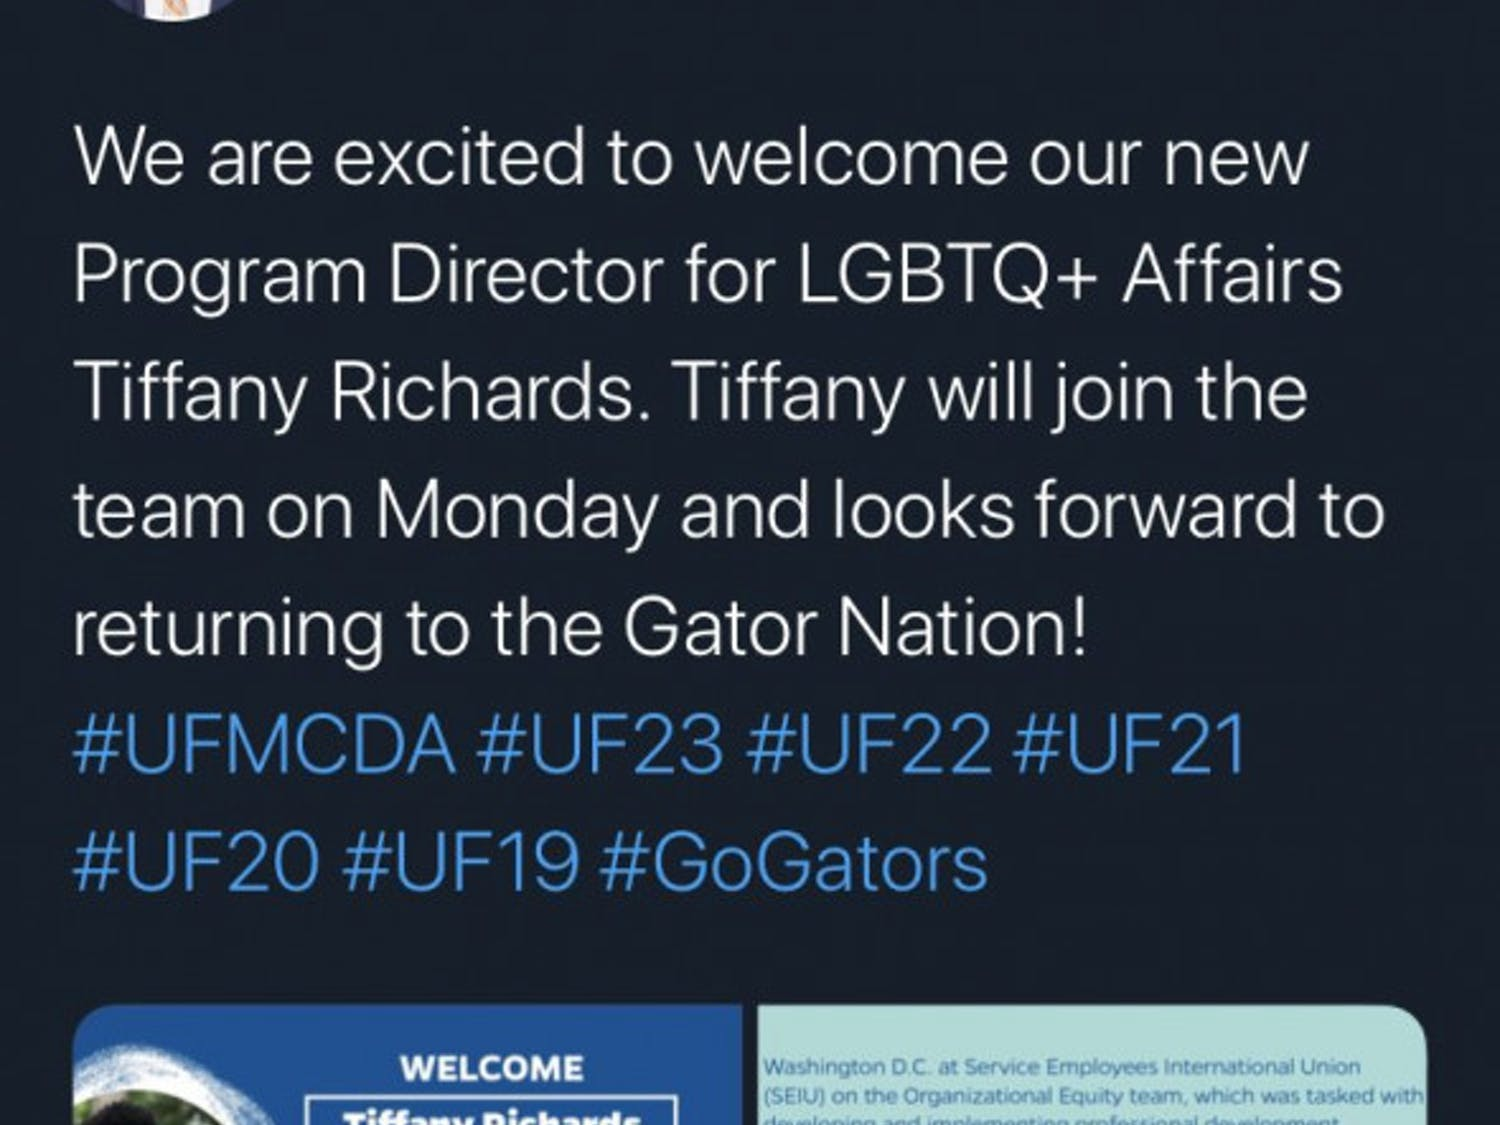 Will Atkins, associate dean of students and senior director of the Multicultural and Diversity Affairs department at UF, announced Friday the hiring of Tiffany Richards, the new program director for LGBTQ+ Affairs, on Twitter.